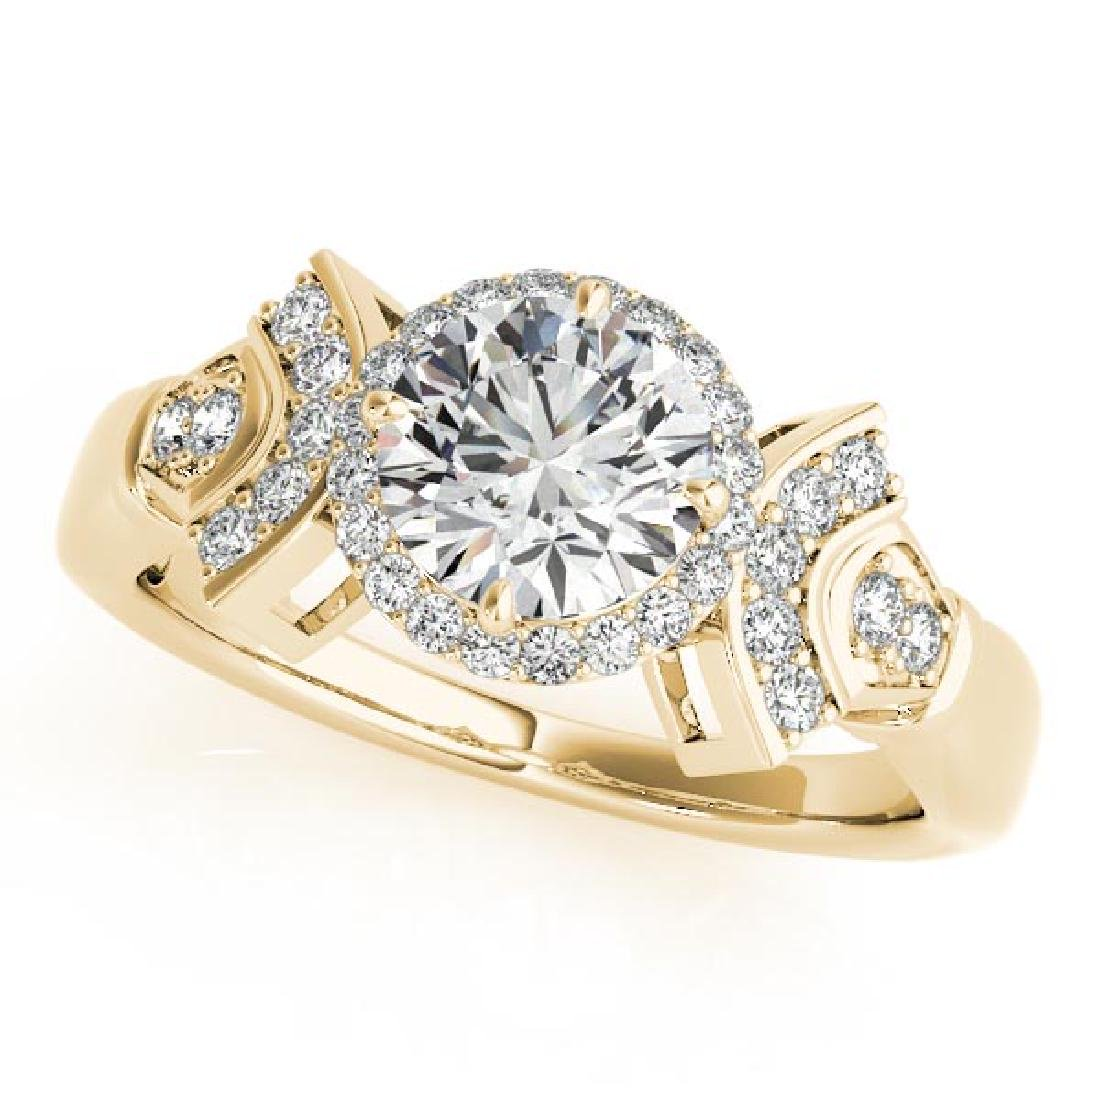 CERTIFIED 18K YELLOW GOLD .94 CT G-H/VS-SI1 DIAMOND HAL